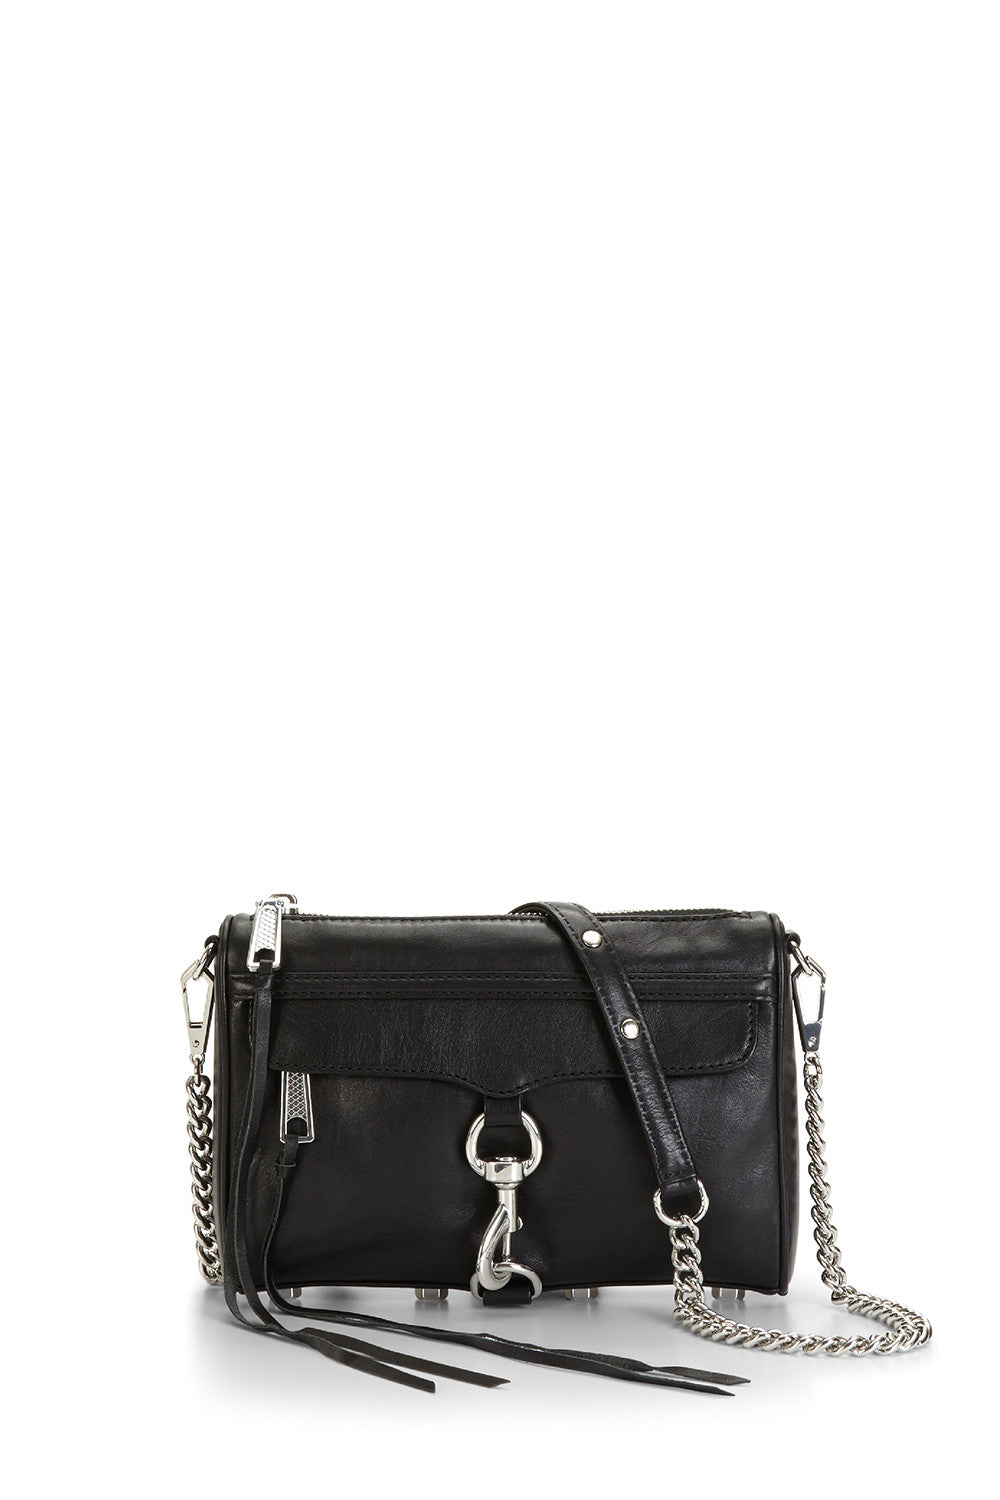 Black   Silver Mini M.A.C. Crossbody Bag   Rebecca Minkoff 9bd493ba48